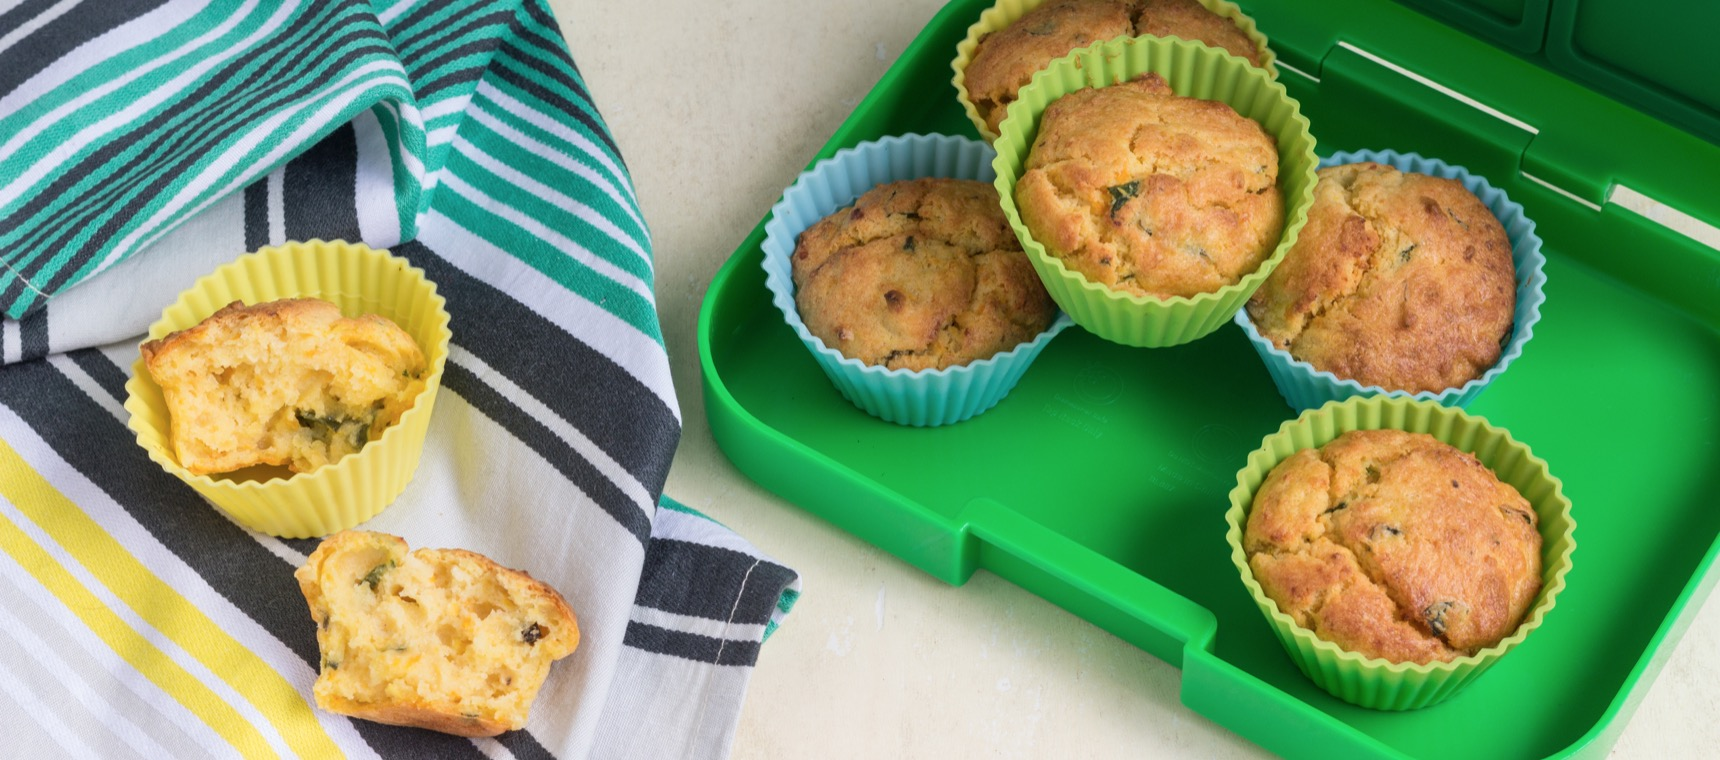 Pumpkin, Spinach and Feta Lunchbox Muffins – The 4 Blades